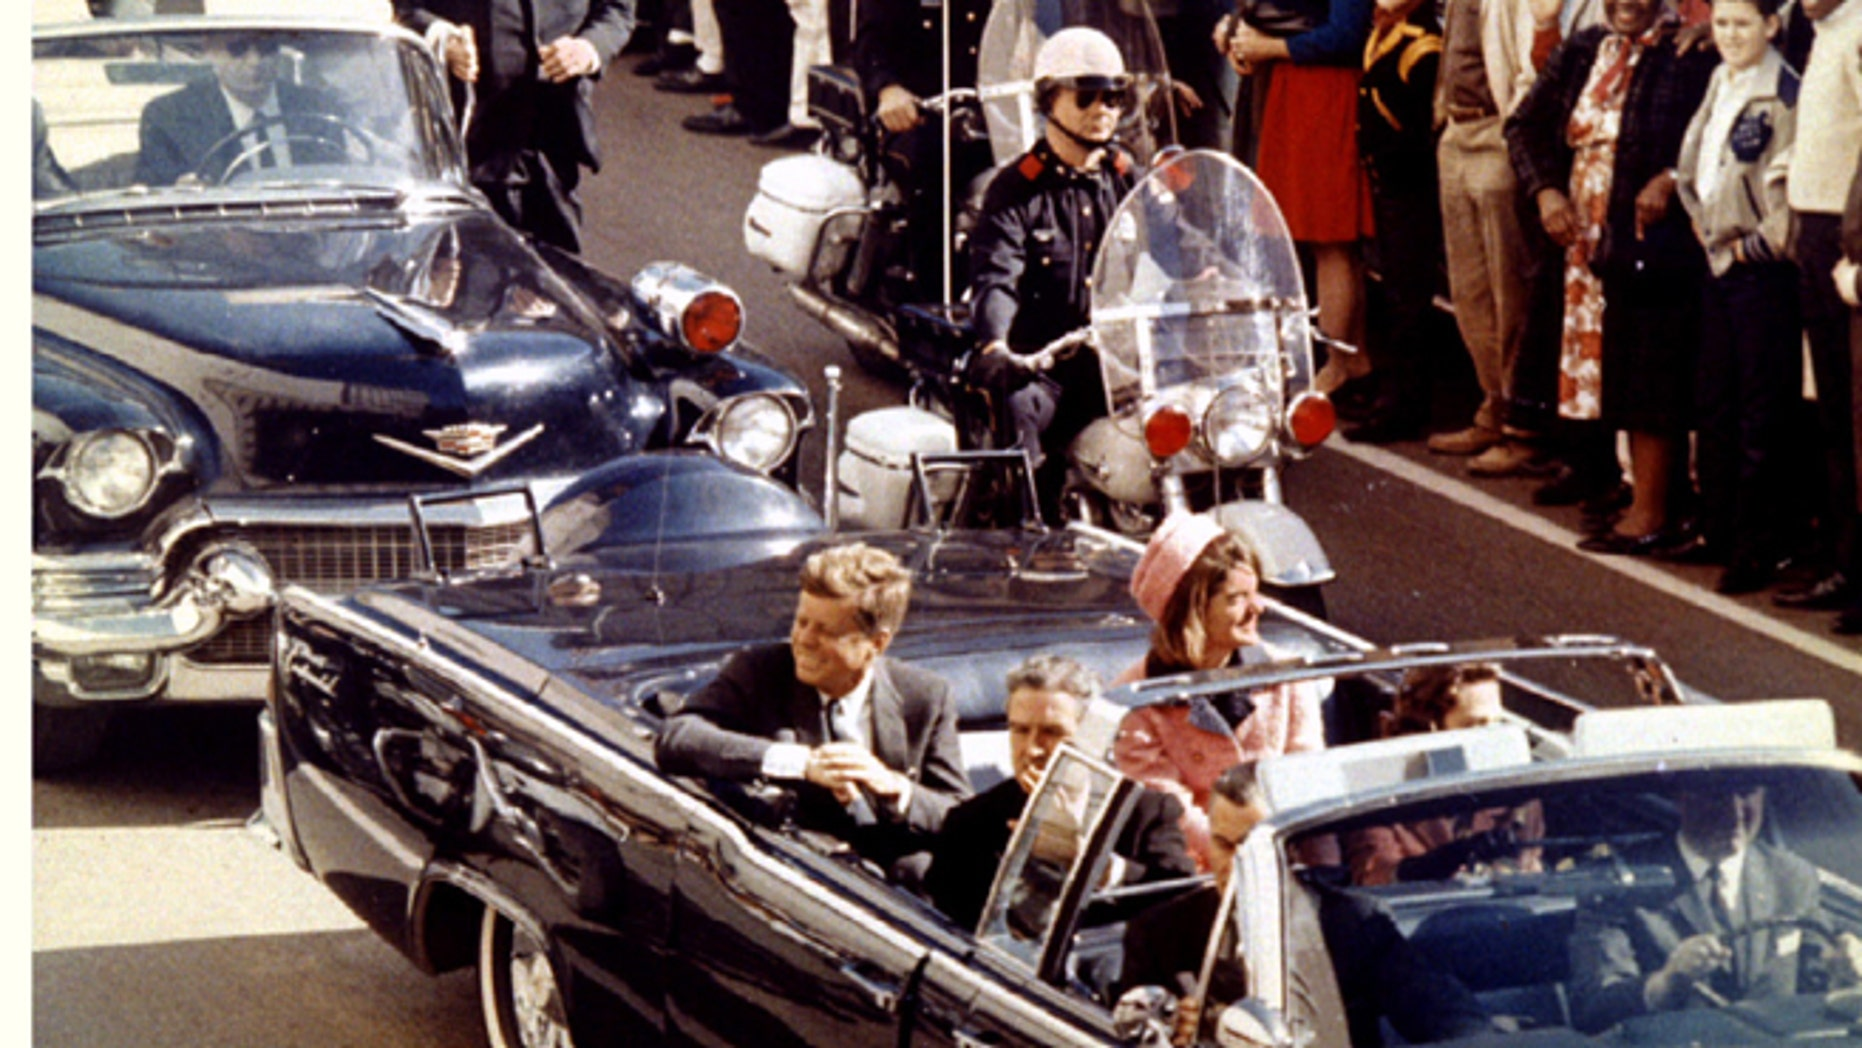 November 22, 1993 will mark the 30th anniversary of the assassination of President John F. Kennedy. President and Mrs. John F. Kennedy, and Texas Governor John Connally ride through Dallas moments before Kennedy was assassinated, November 22, 1963. (REUTERS)